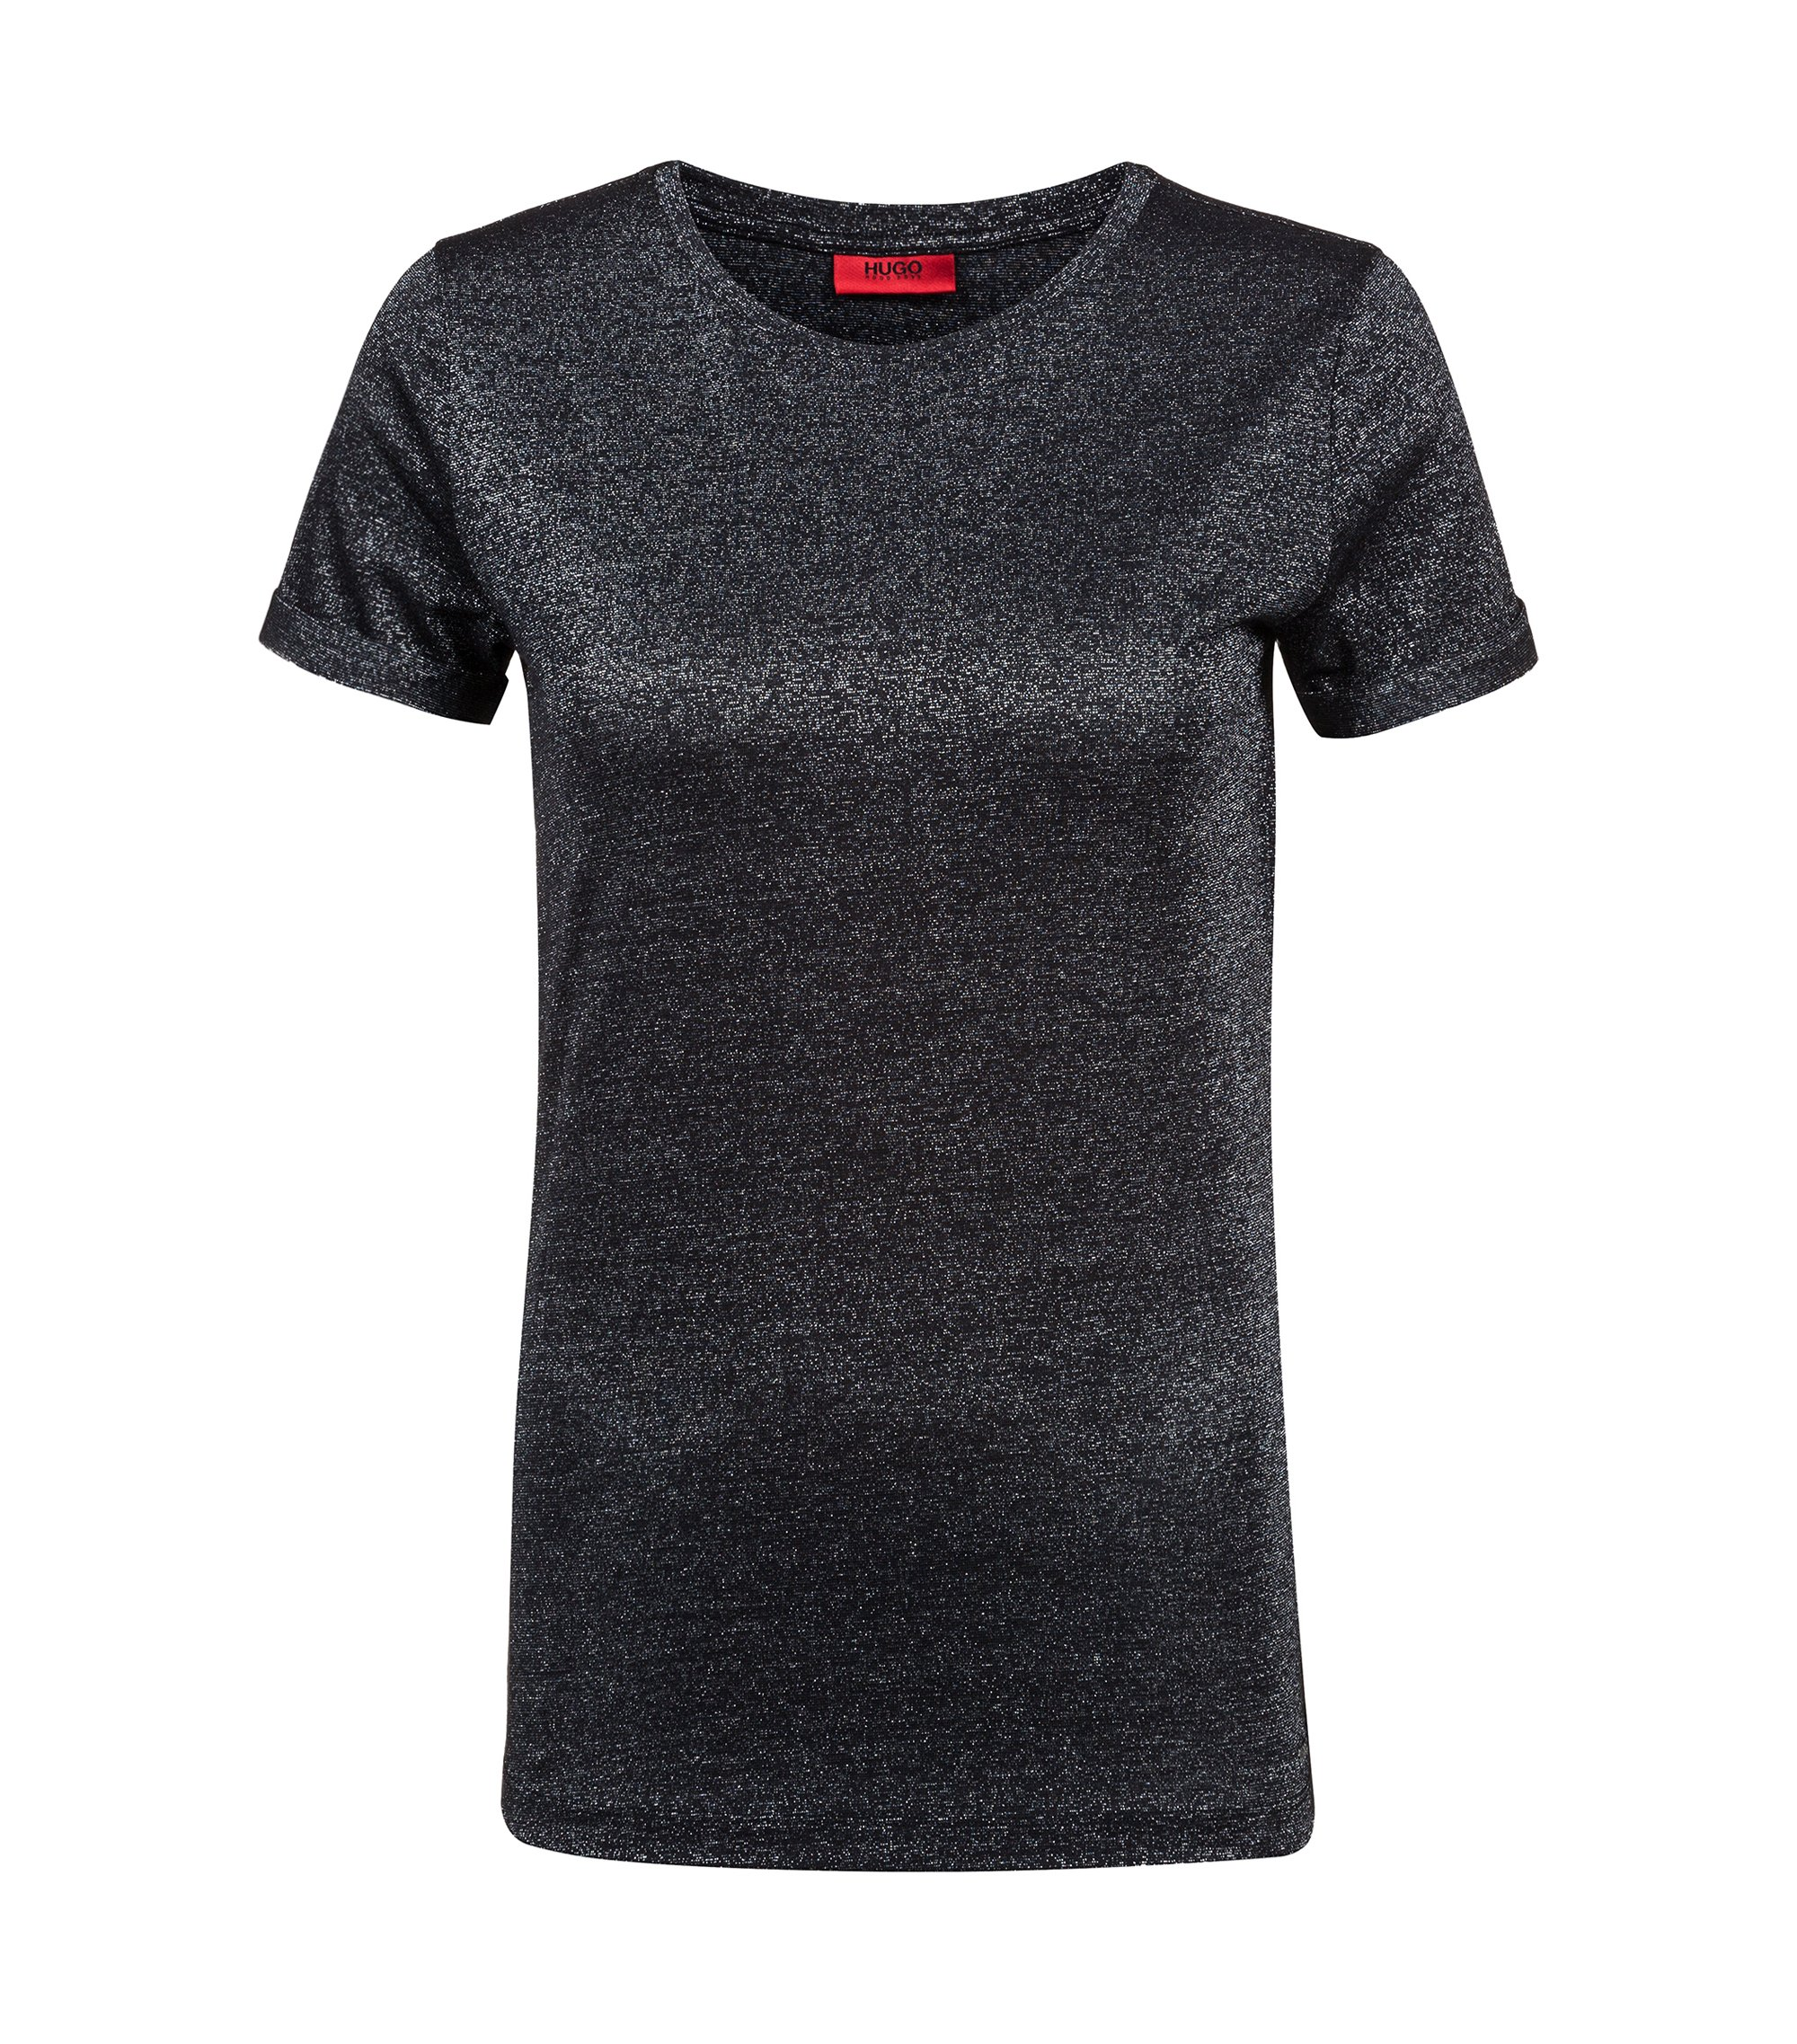 Slim-fit T-shirt in sparkly stretch-jersey fabric, Black